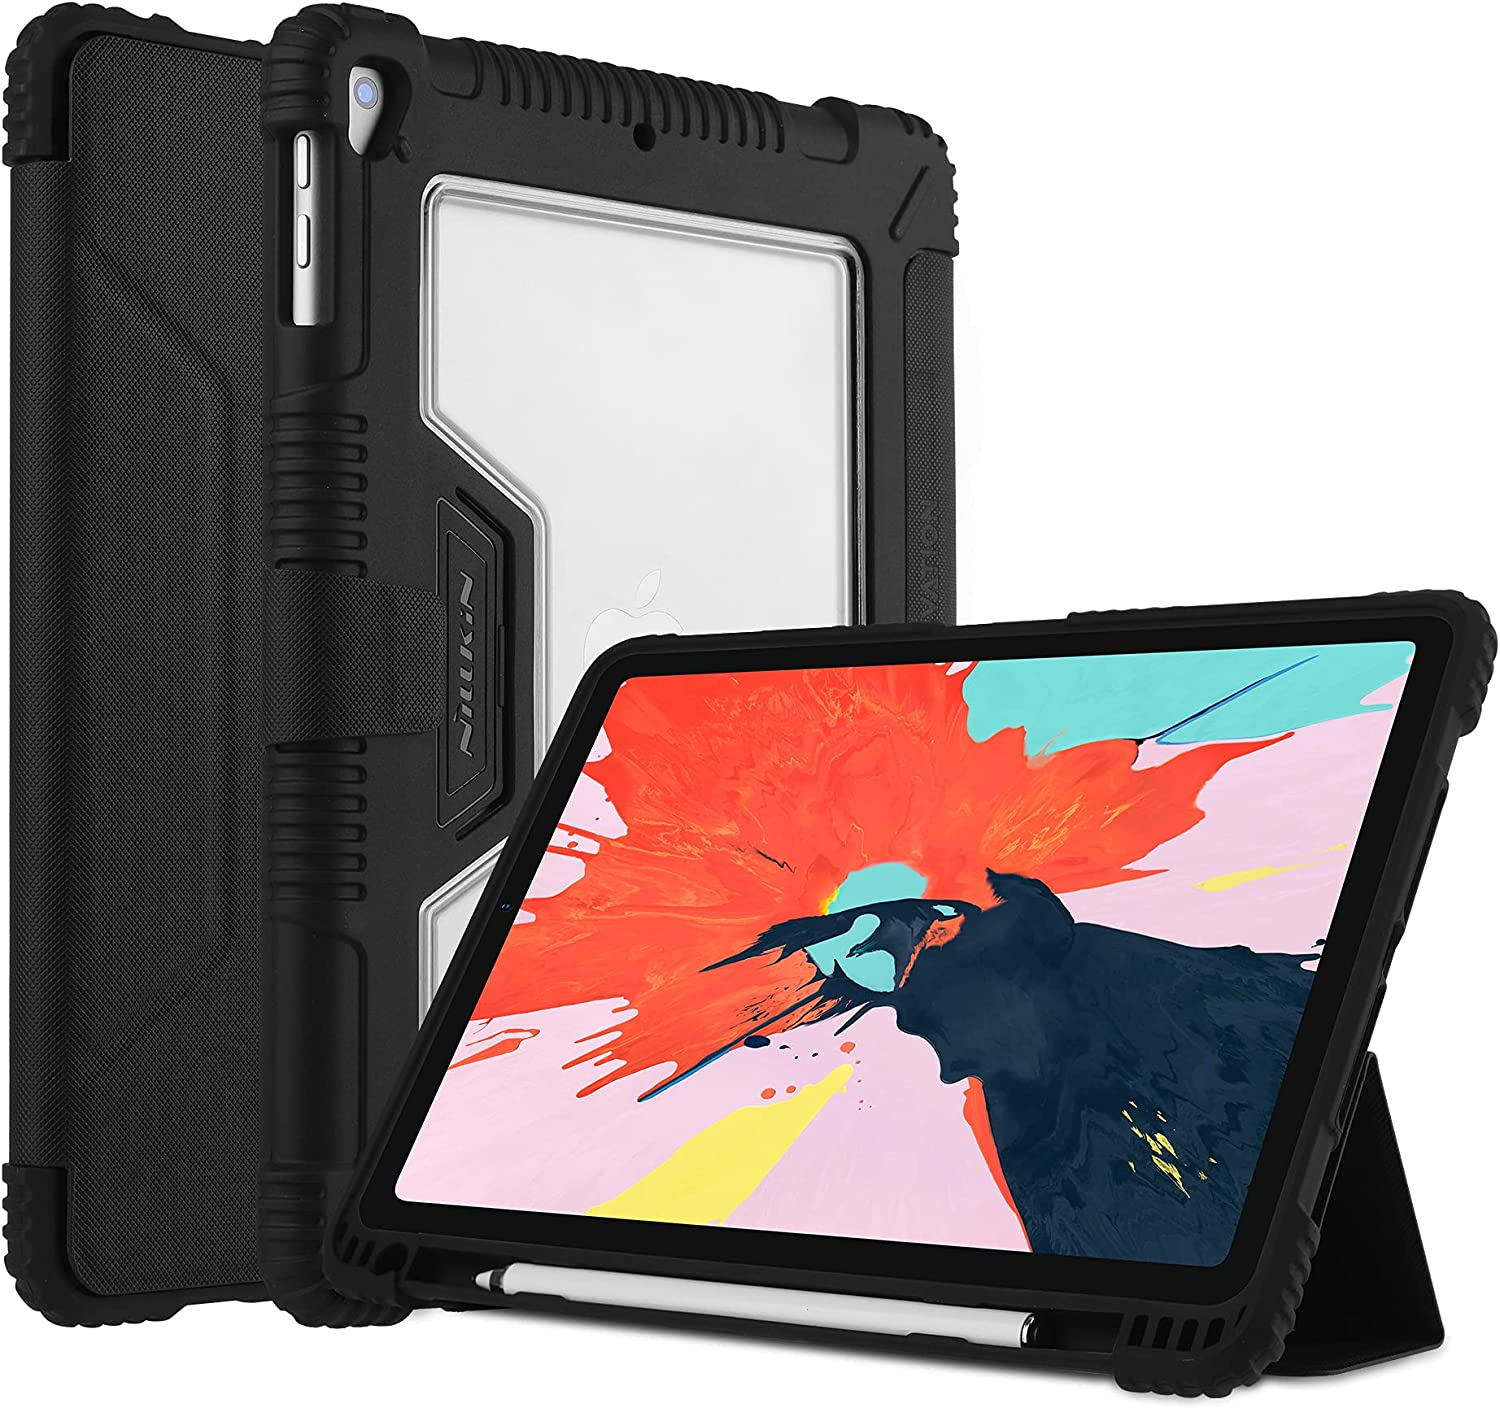 Nillkin iPad Pro 12.9 Case 2018 3rd Generation with Screen Protector,PU Leather Full Protective Case with Apple Pencil Holder and Auto Sleep,Smart Cover and Protective Film for iPad Pro 12.9 inch 2018